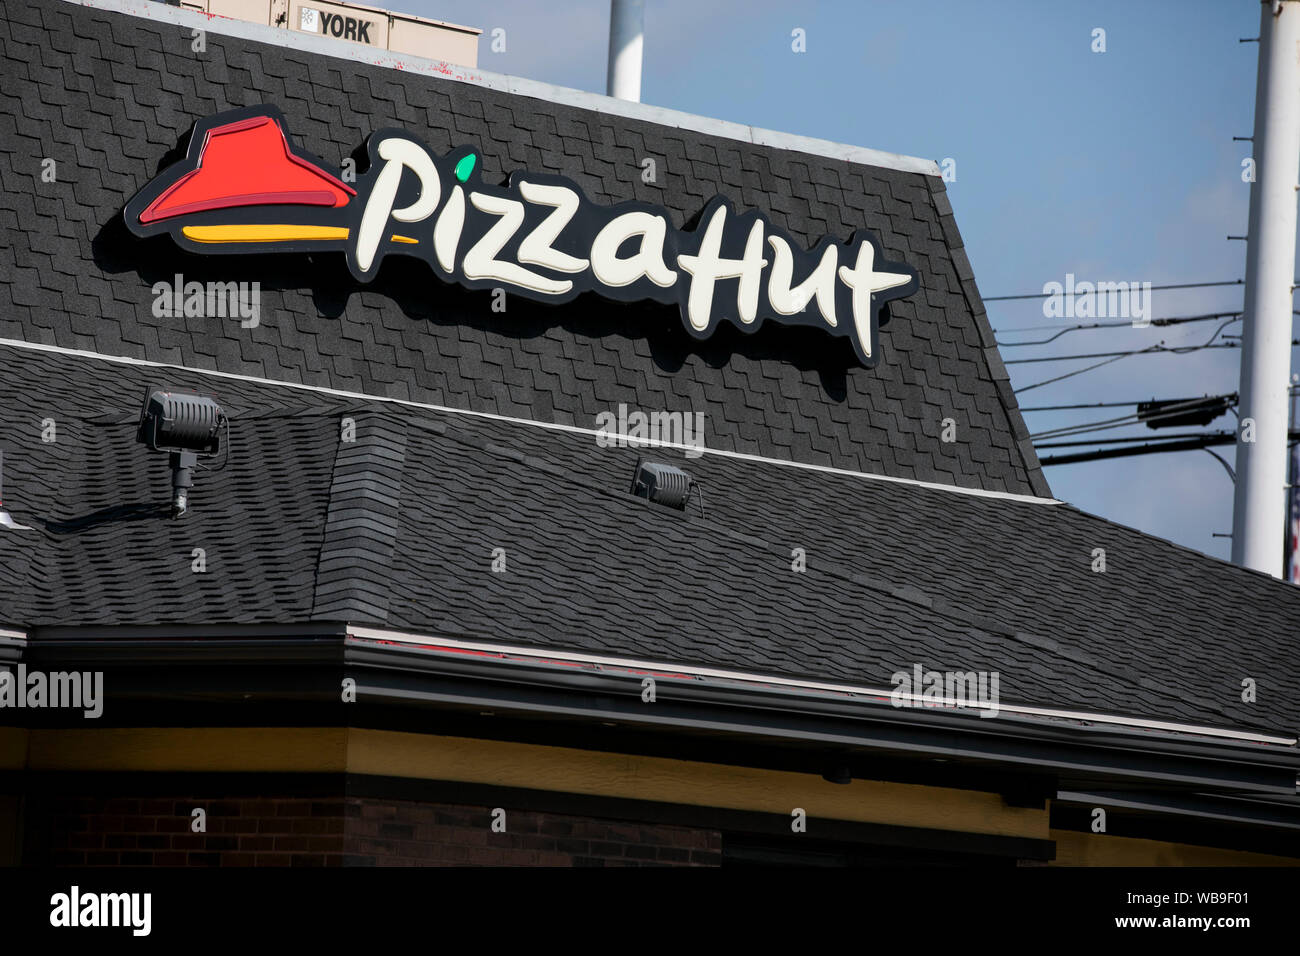 Pizza Hut Sign Stock Photos Pizza Hut Sign Stock Images